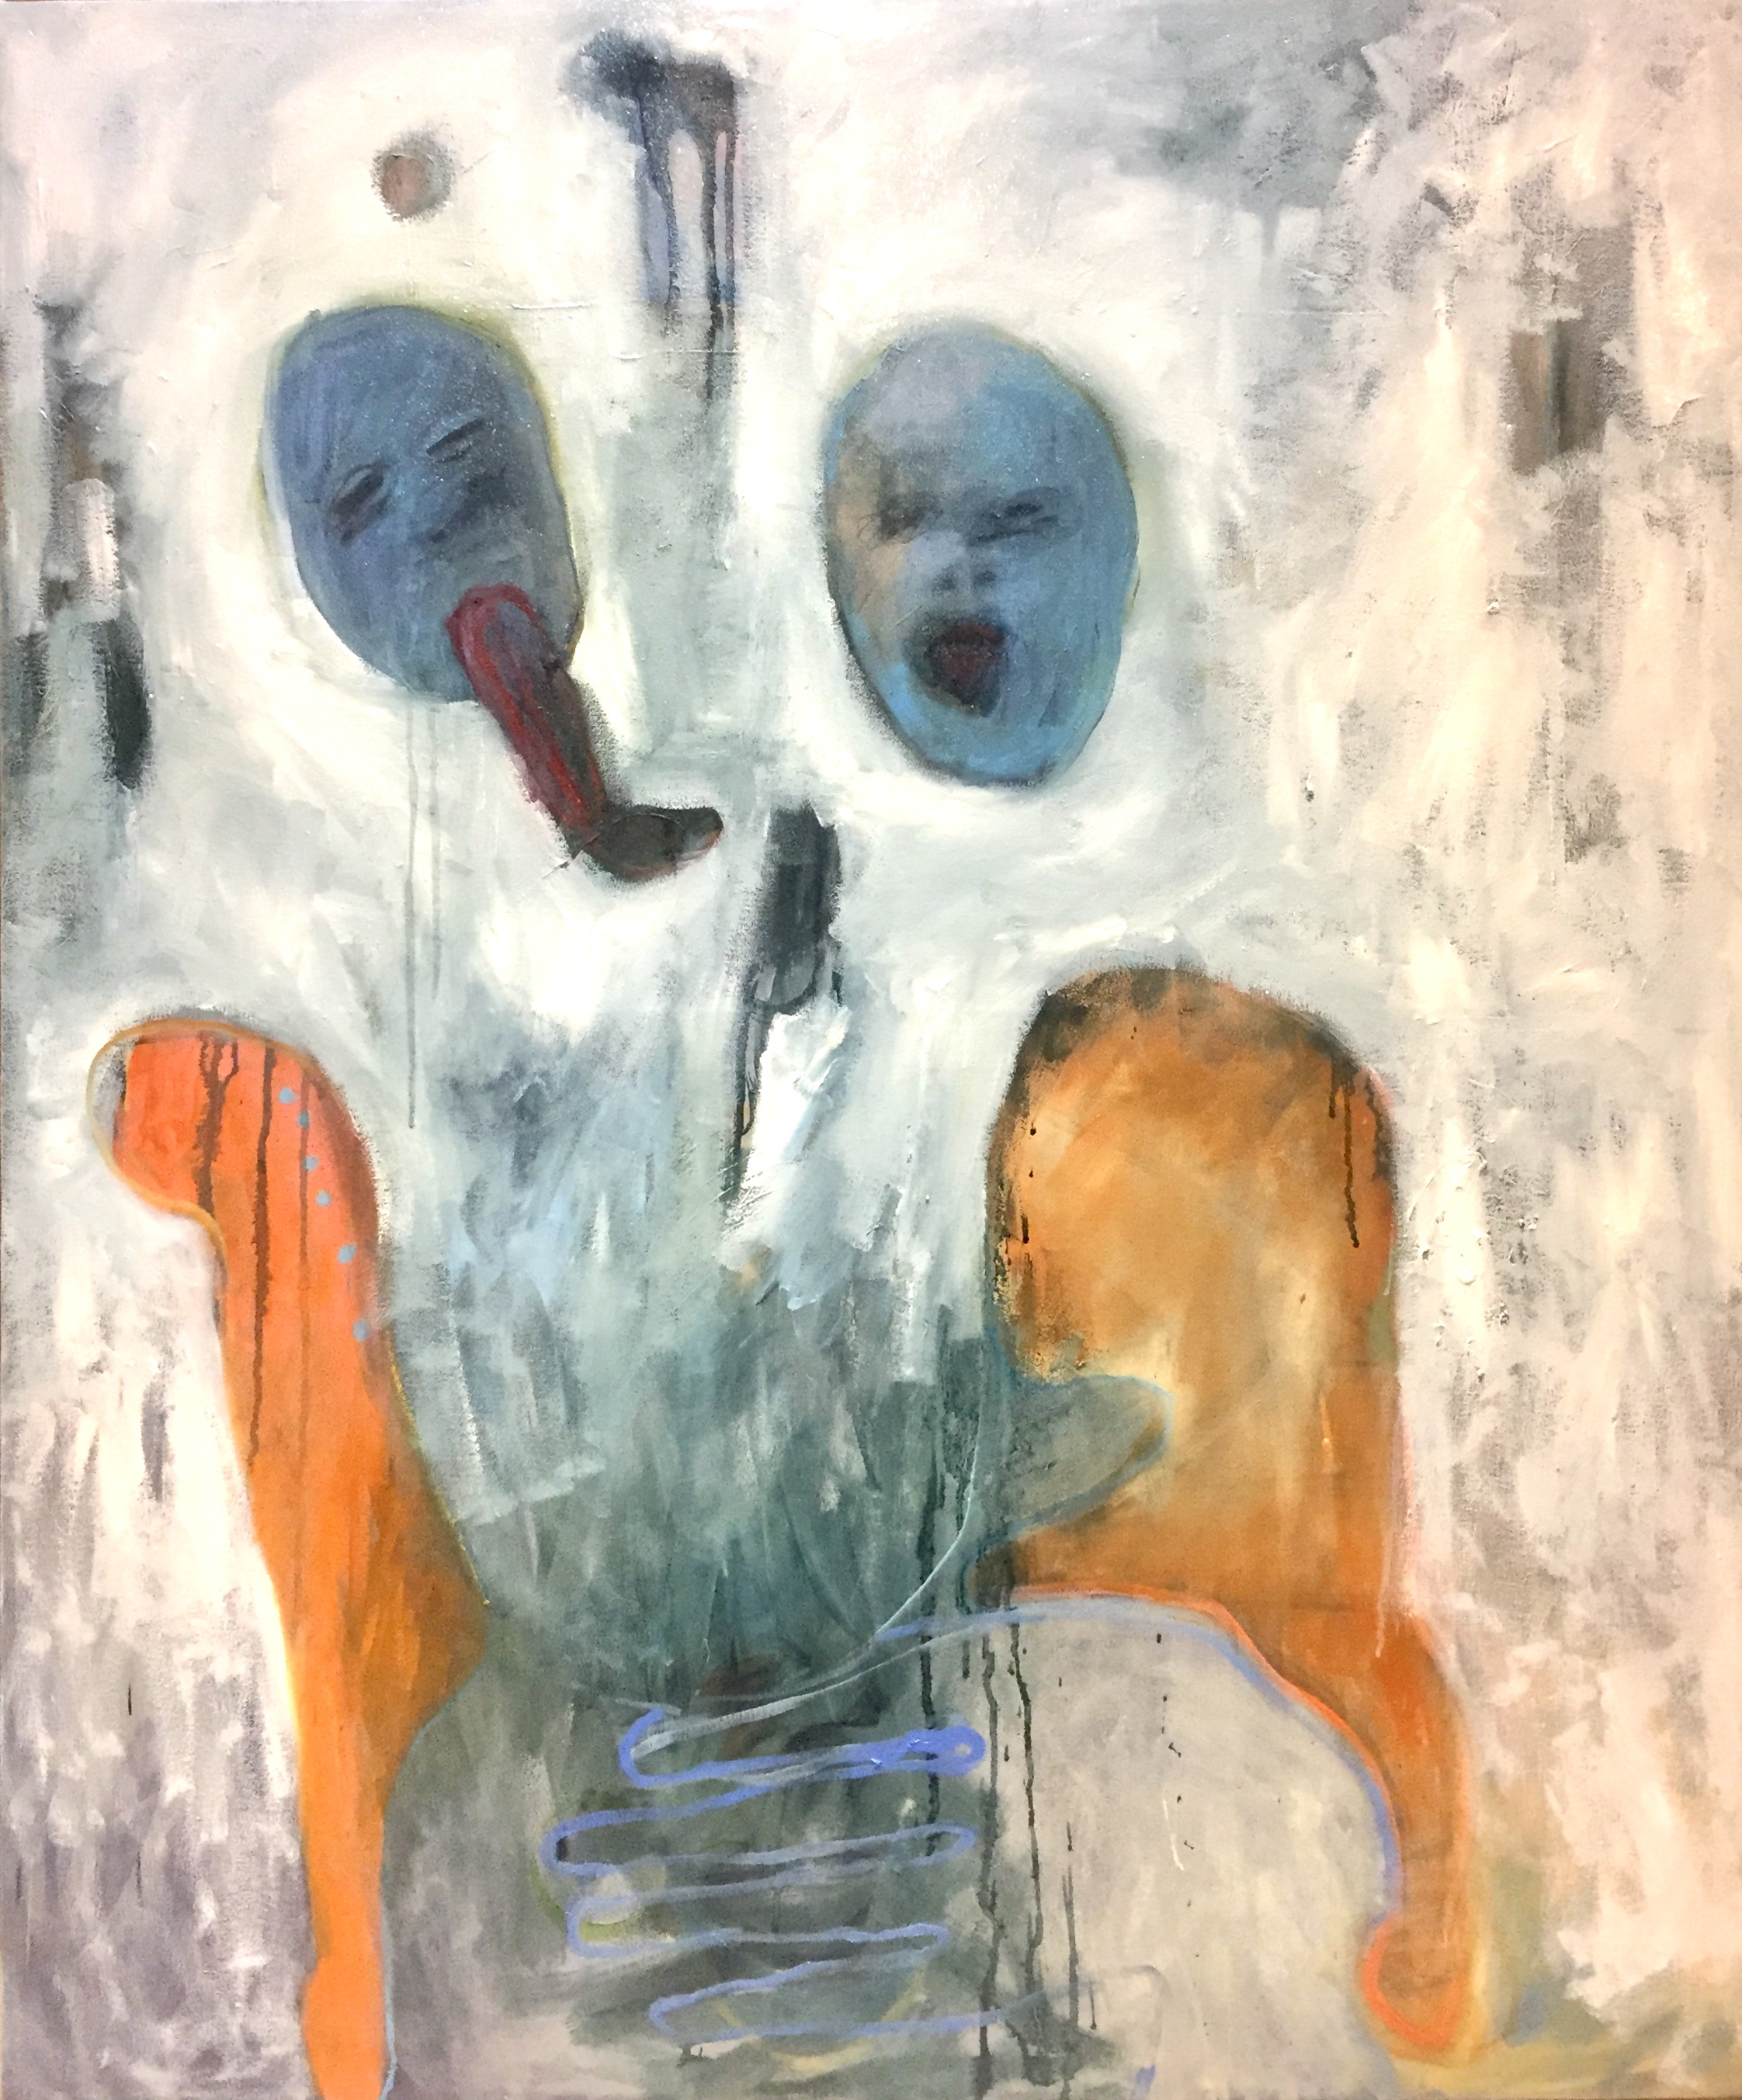 Twin  Turmoil          Oil on Canvas      1000 x 1200 x 35 mm  R 15 400.00 excl. vat